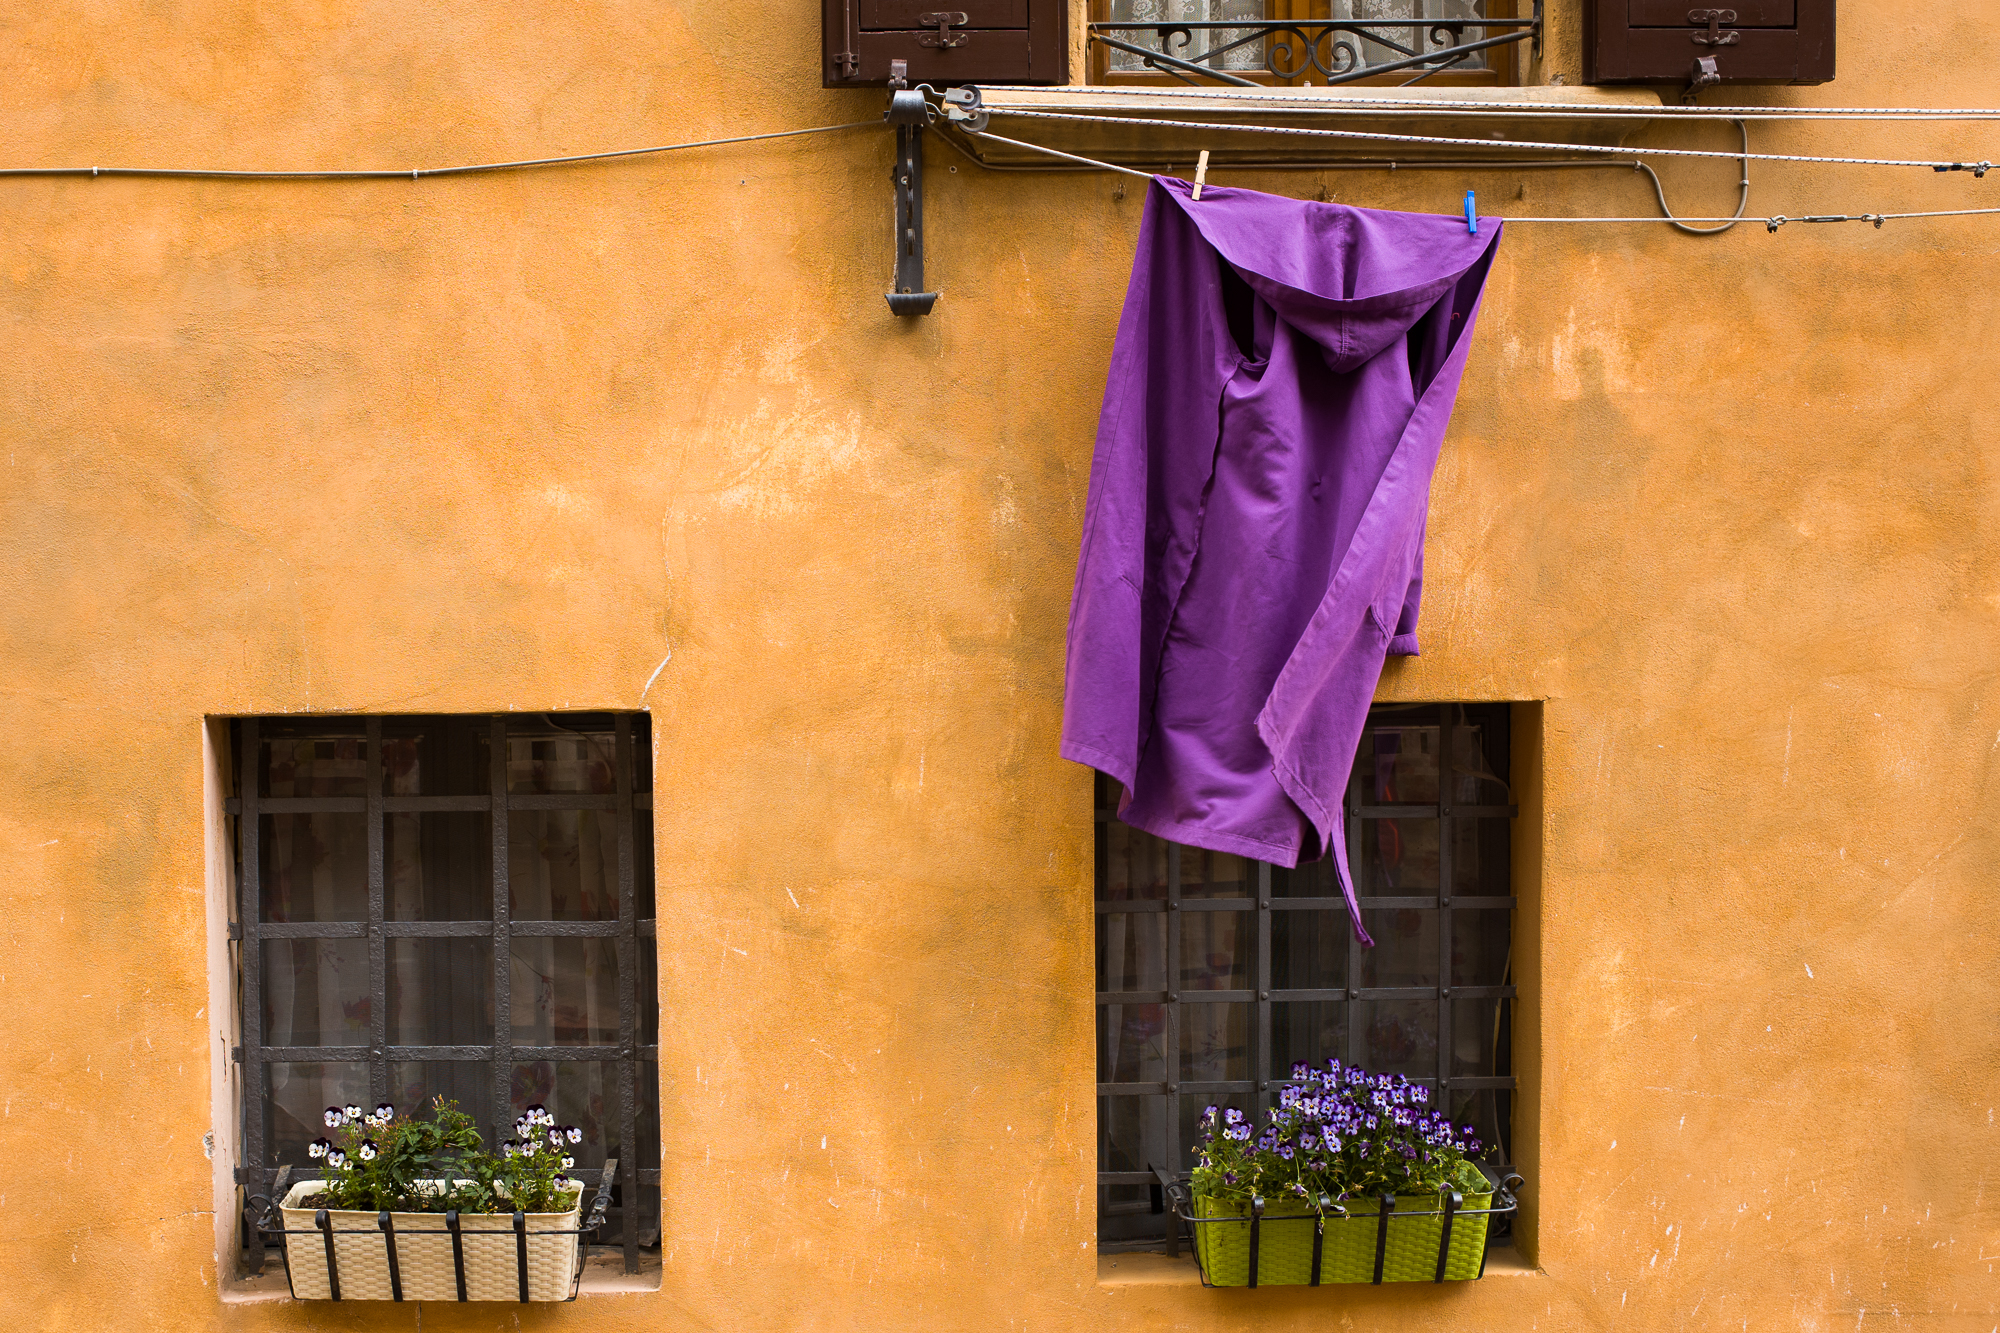 A Priest's Robe drying in the sun